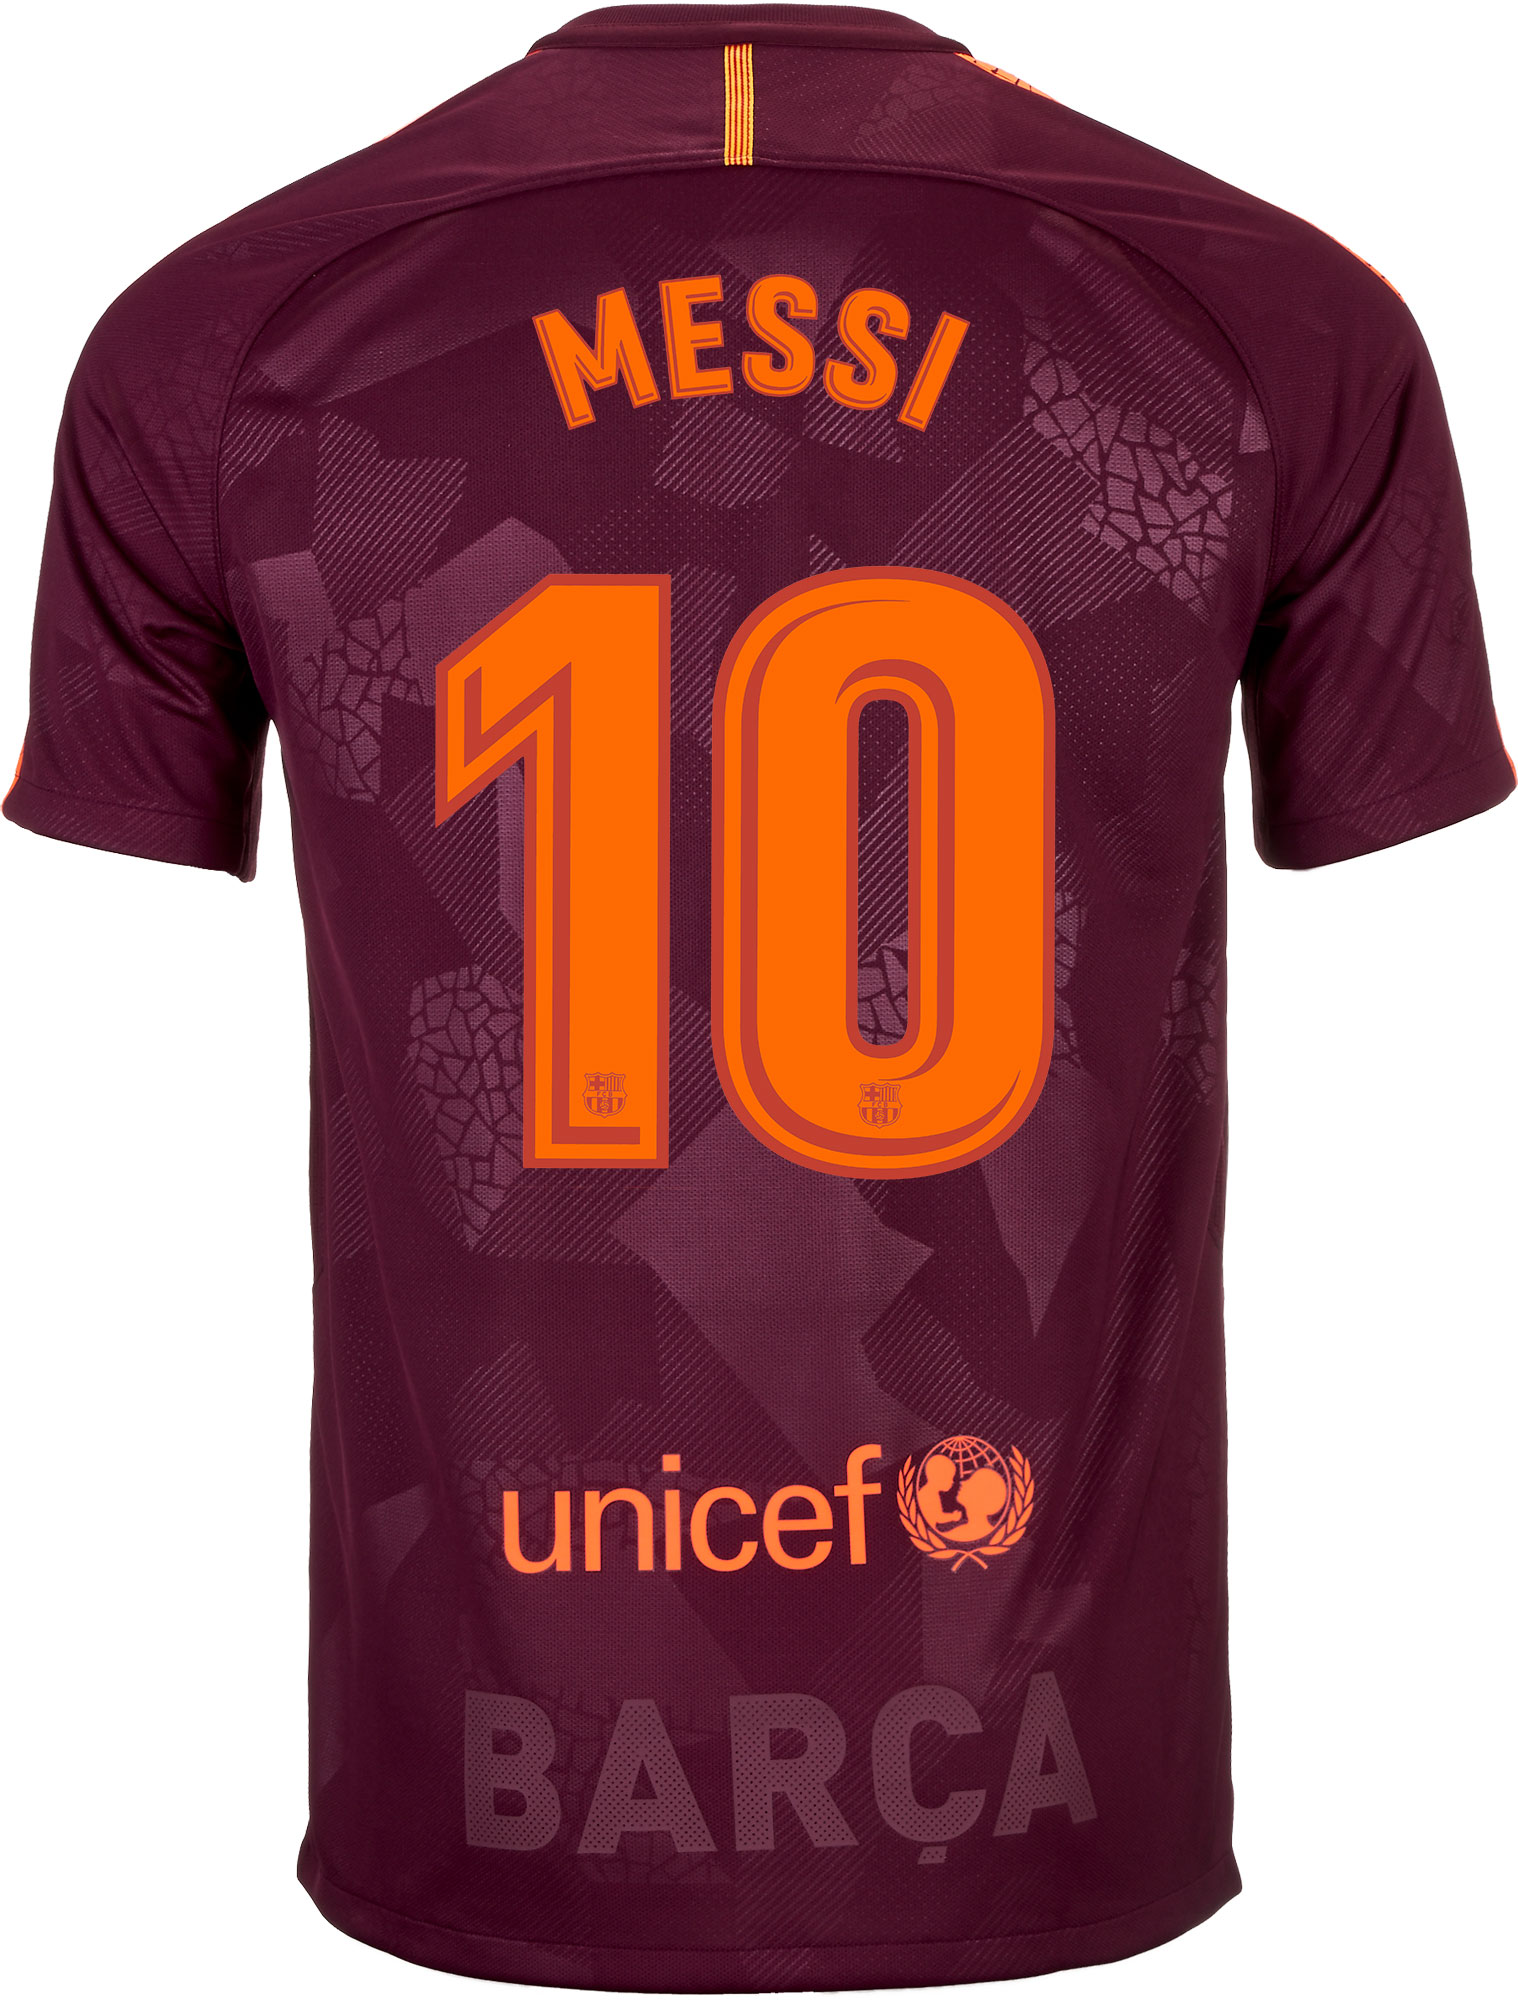 reputable site 654e1 ed7bc Barcelona Jerseys Messi : Best Football Jerseys for Sale ...